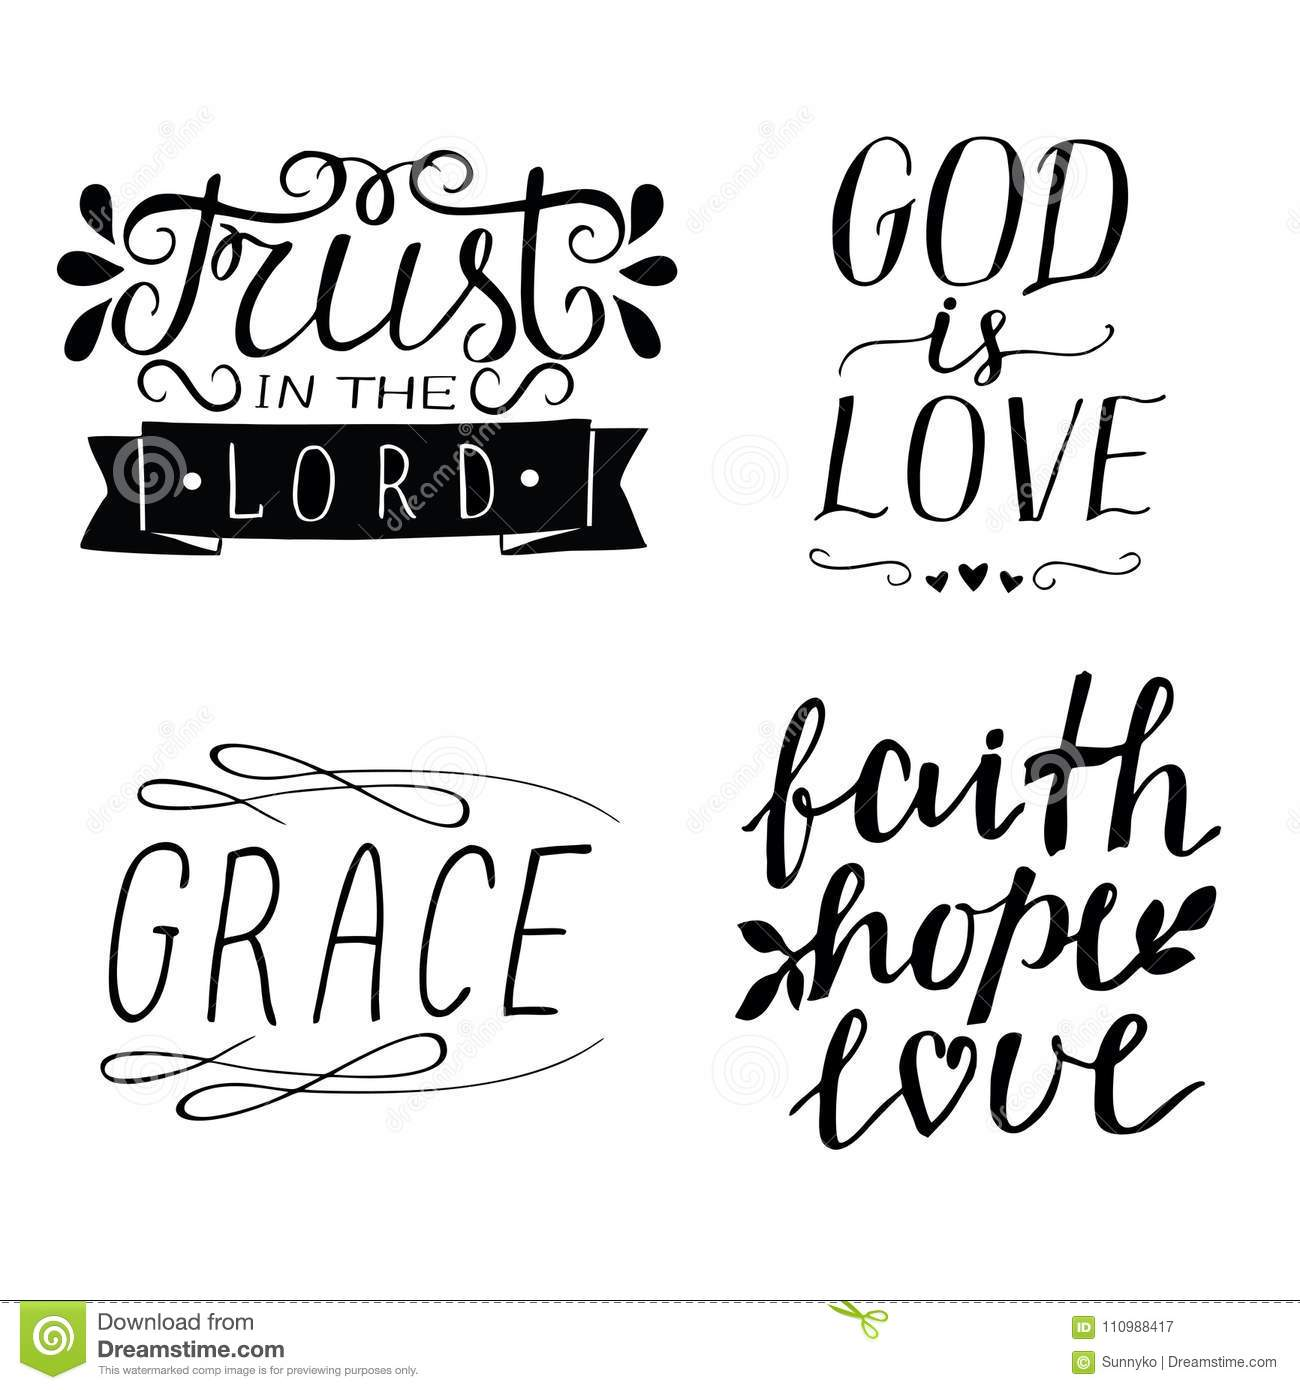 Christian Life Quotes